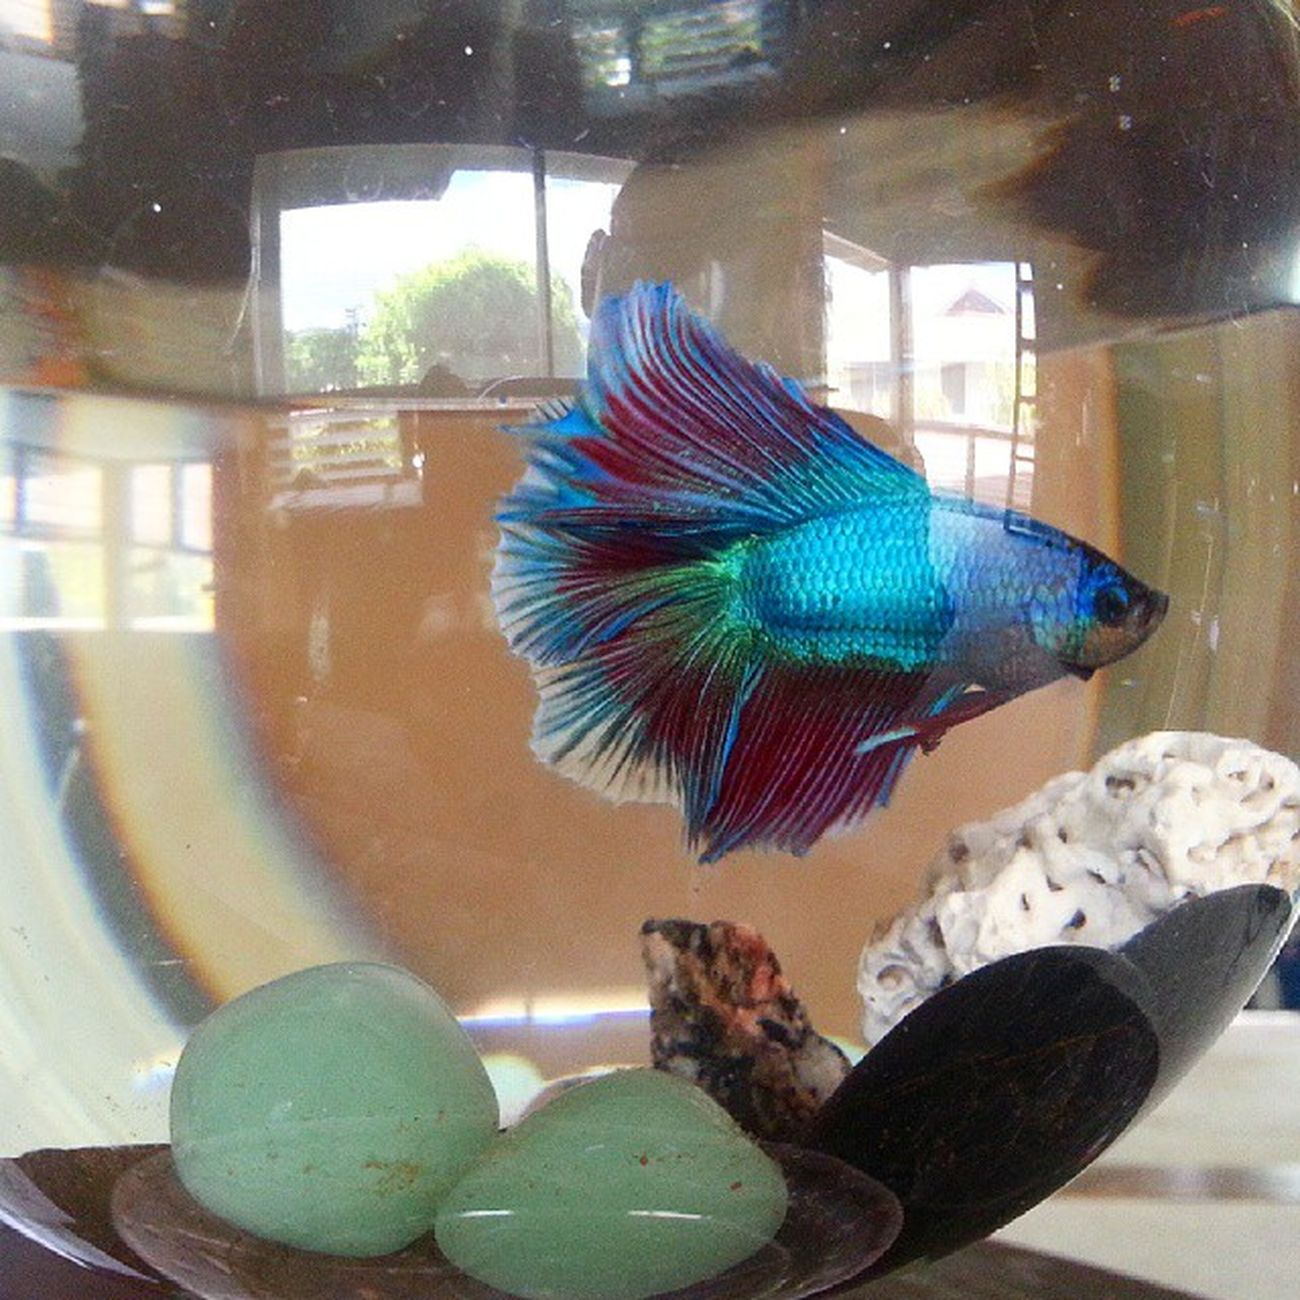 Our newest addition - Lithium Beta Fish @nimbus_photography